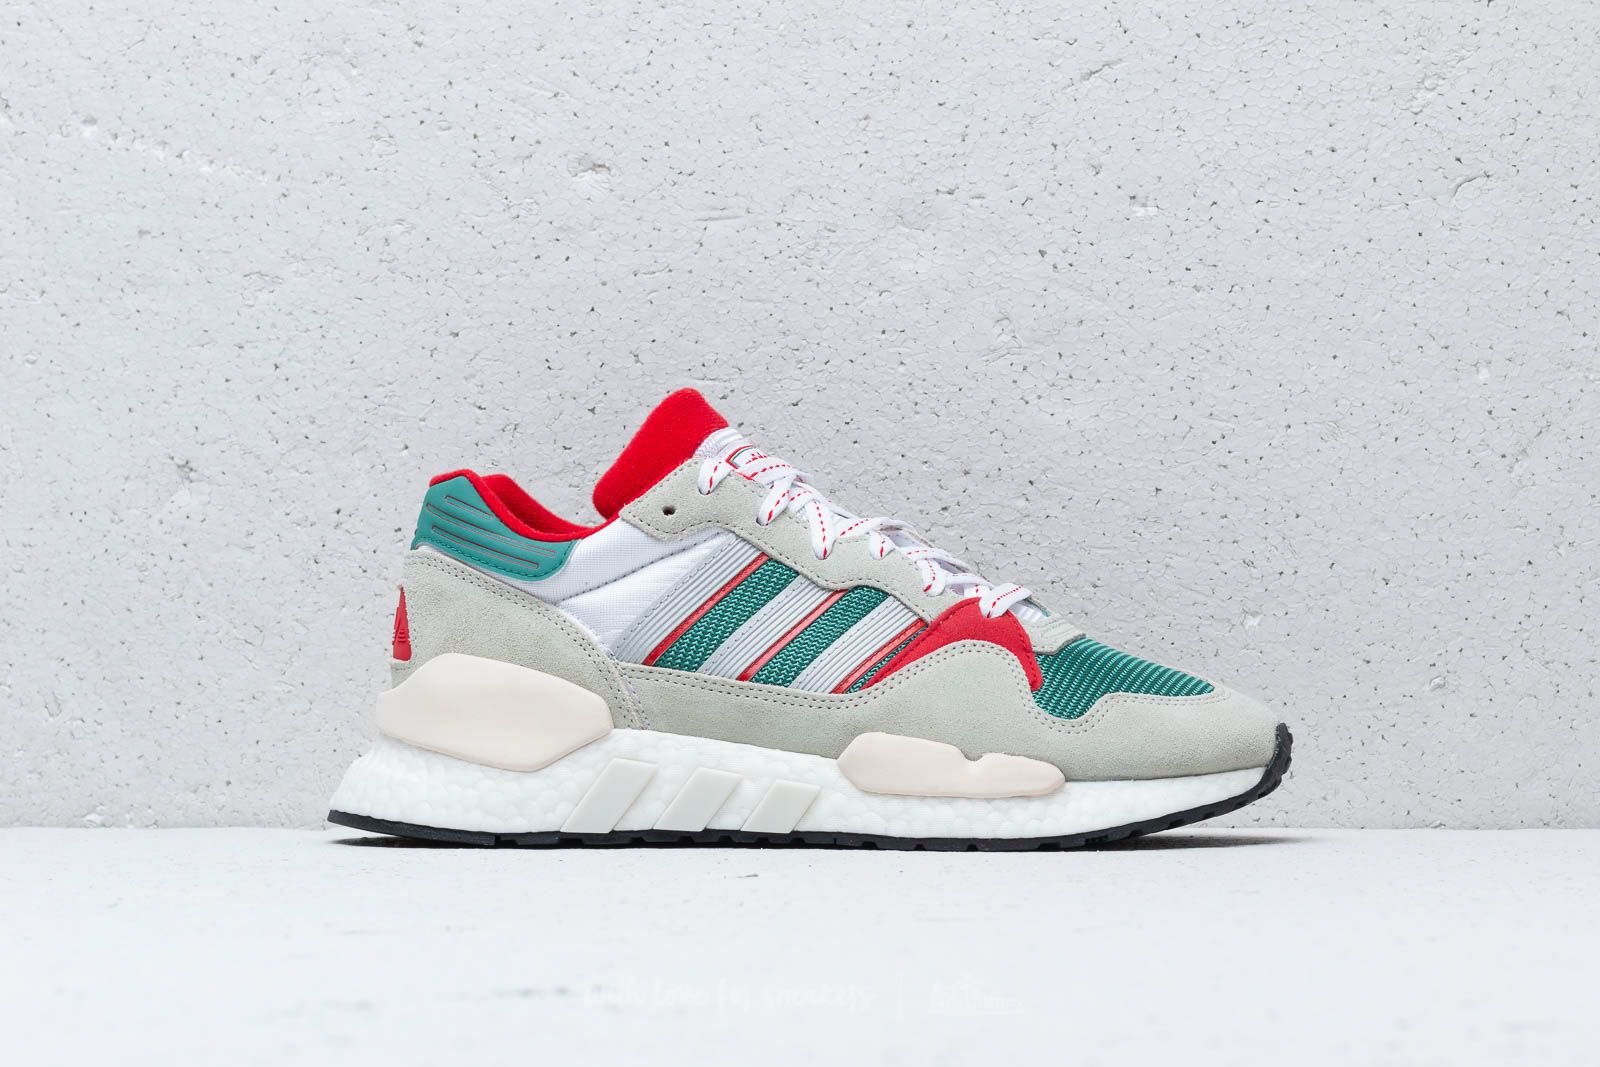 sports shoes 9c8a8 79c79 adidas ZX 930 x EQT Silver Metallic  Future Hydro  Ash Silver at a great